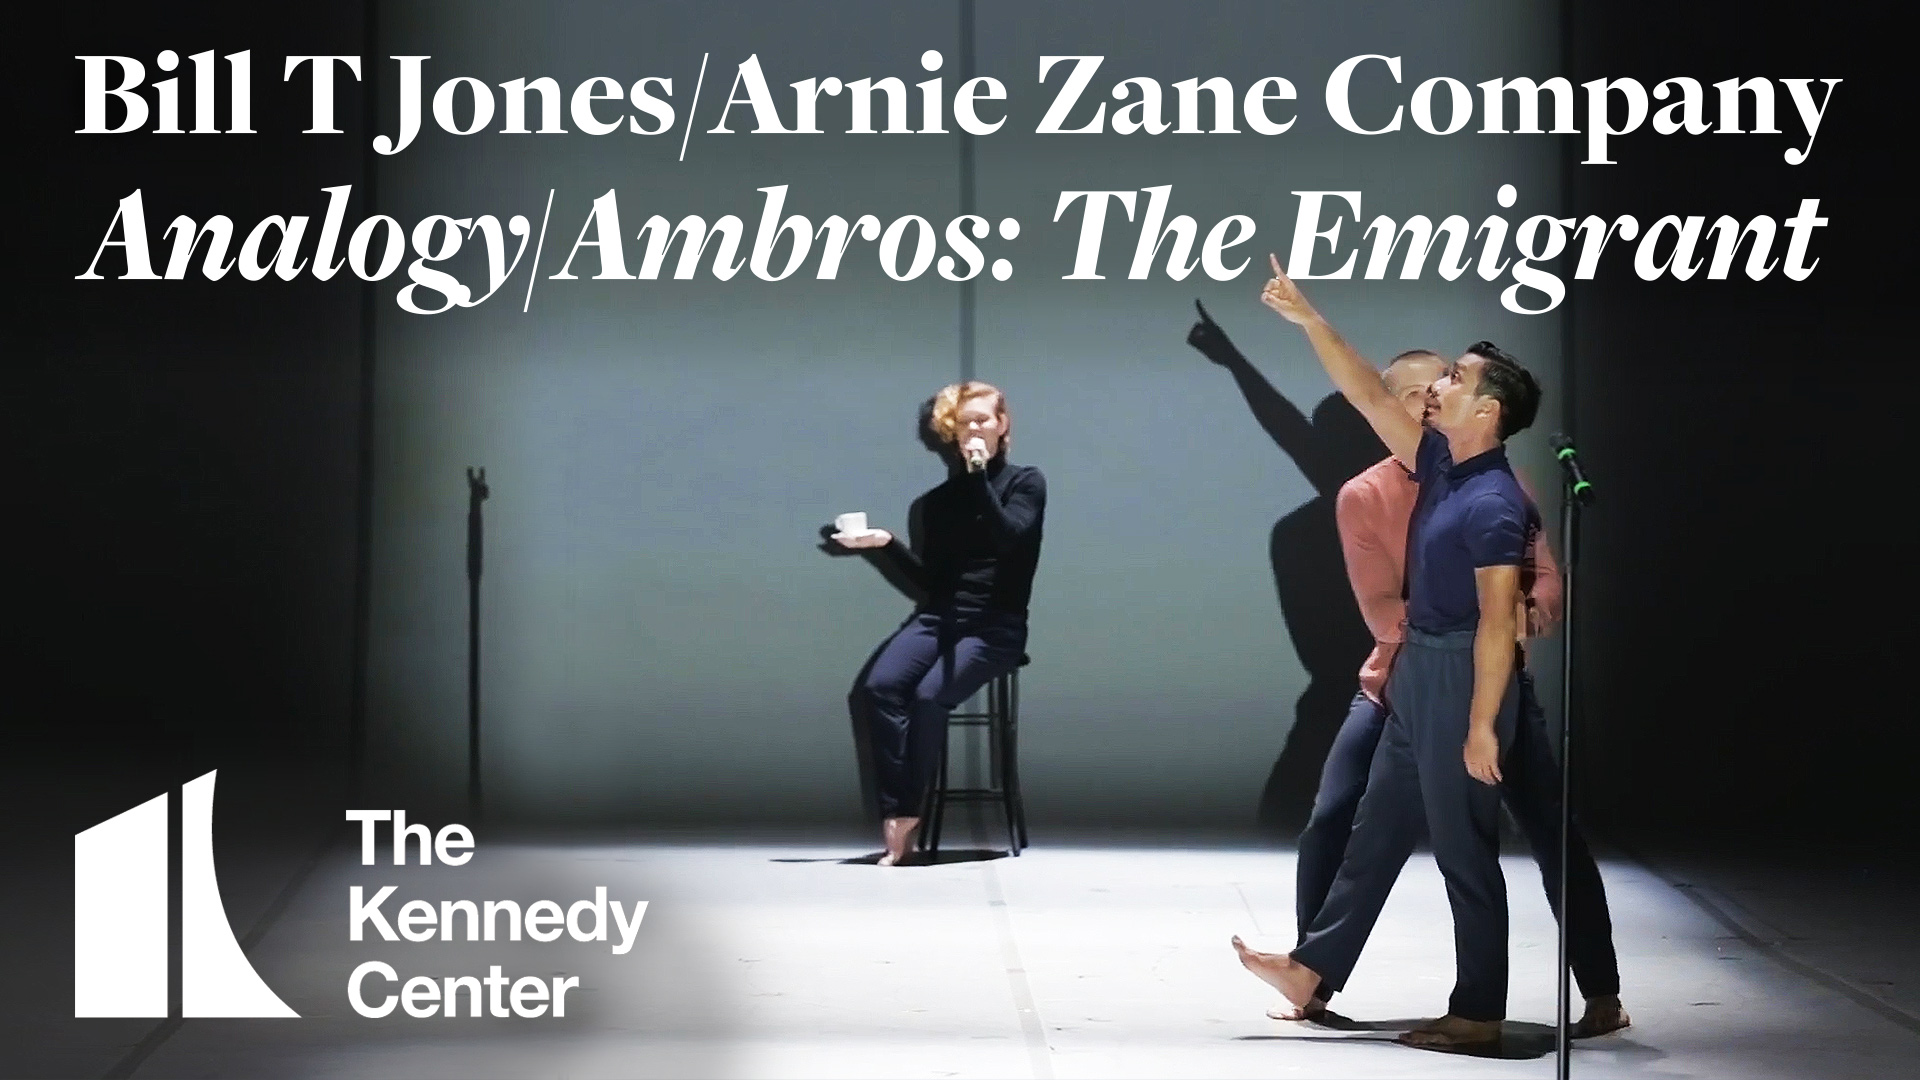 Bill T. Jones/Arnie Zane Company: Analogy/Ambros: The Emigrant | The Kennedy Center